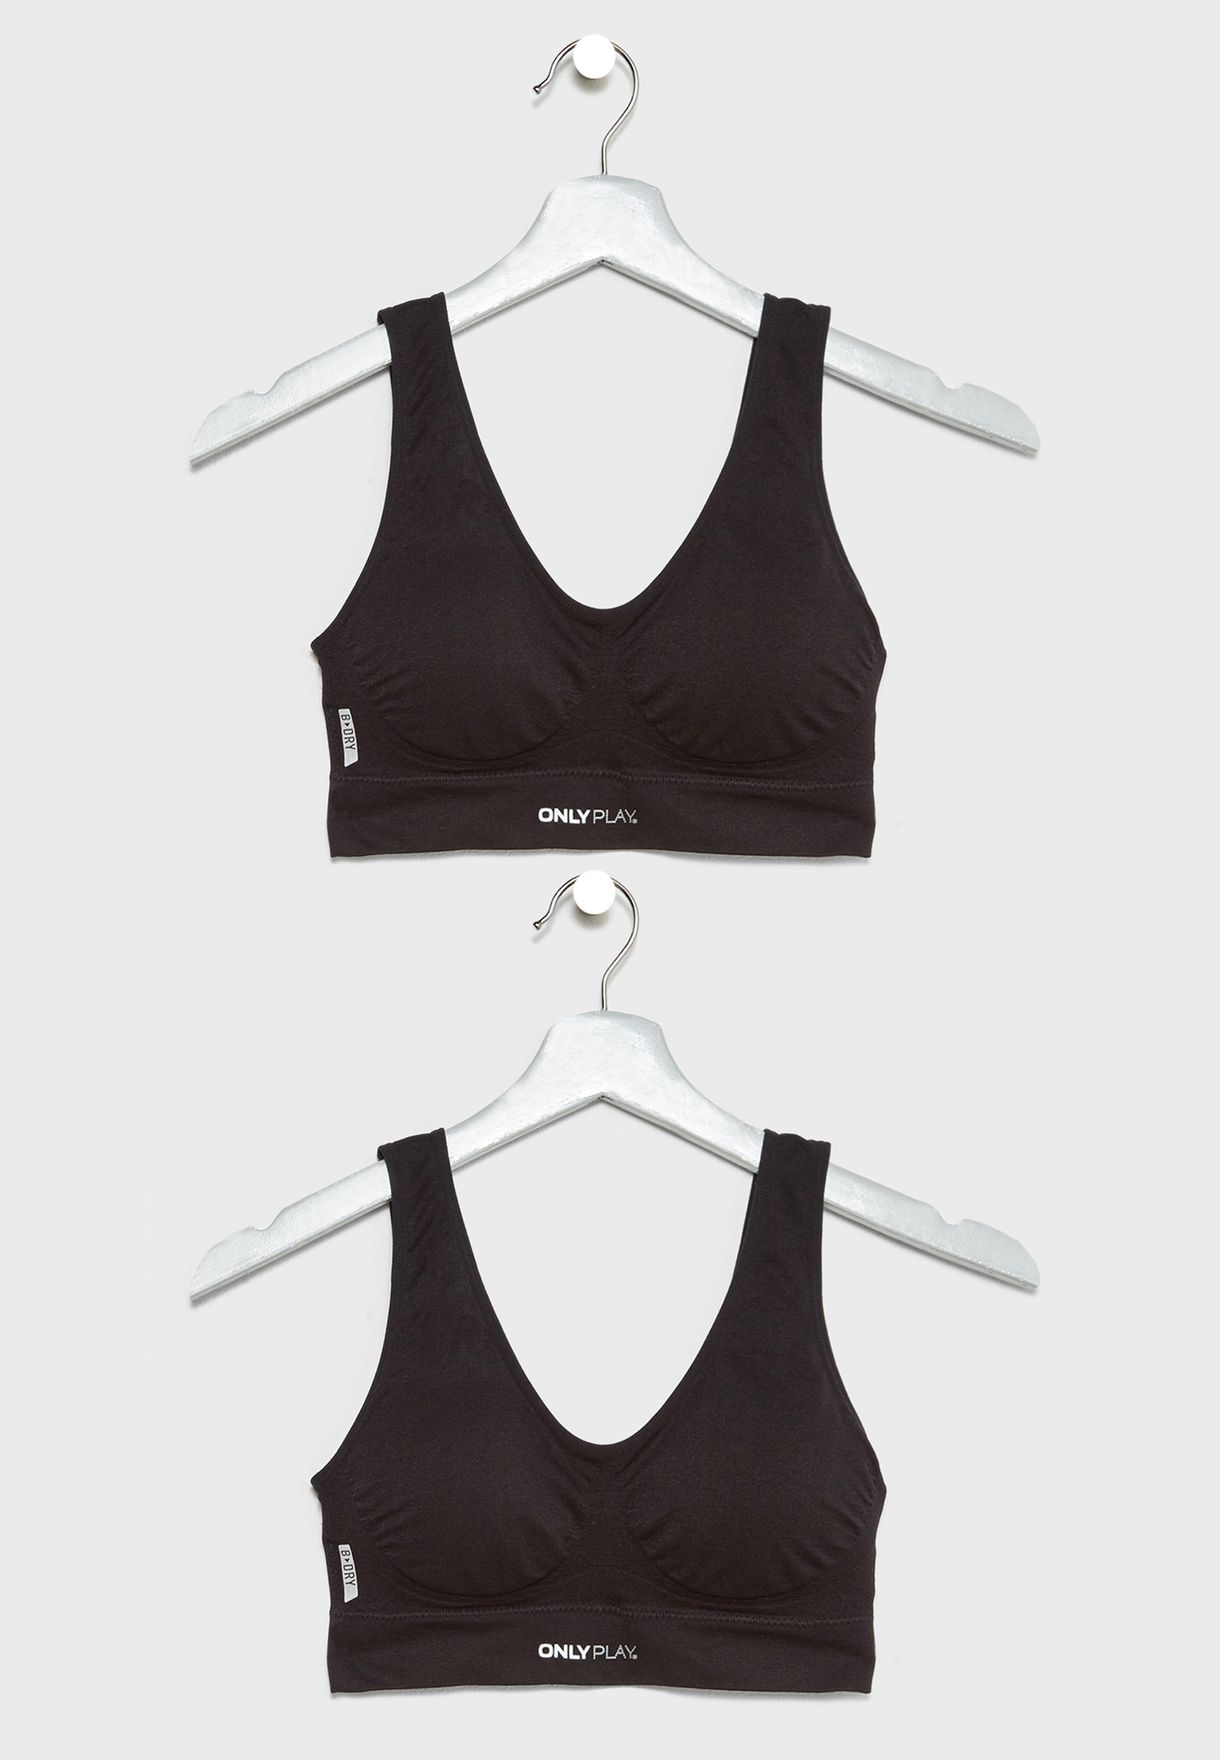 e14724218f990 Shop Only play black 2 Pack Sports Bra 15113968 for Women in UAE ...